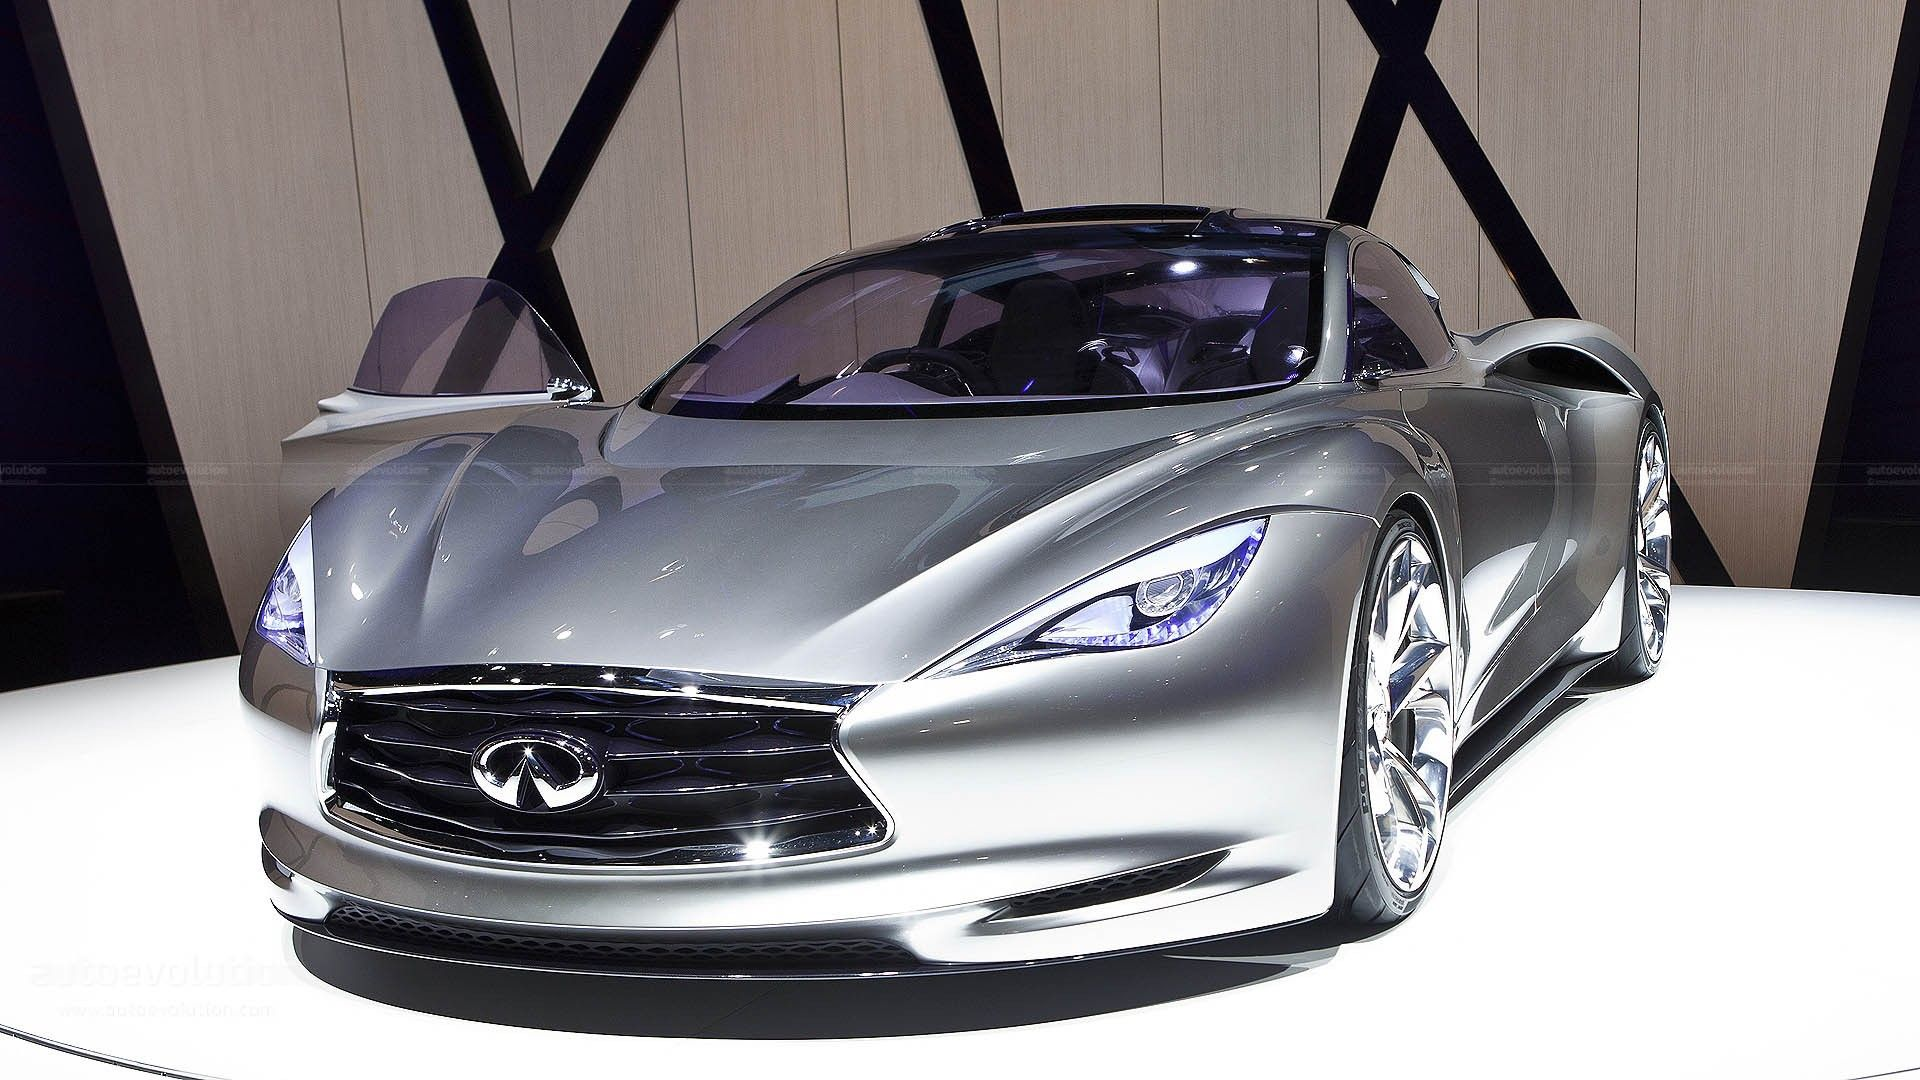 2018 Infiniti Q100 Release Date And Cost - http://world wide web ...